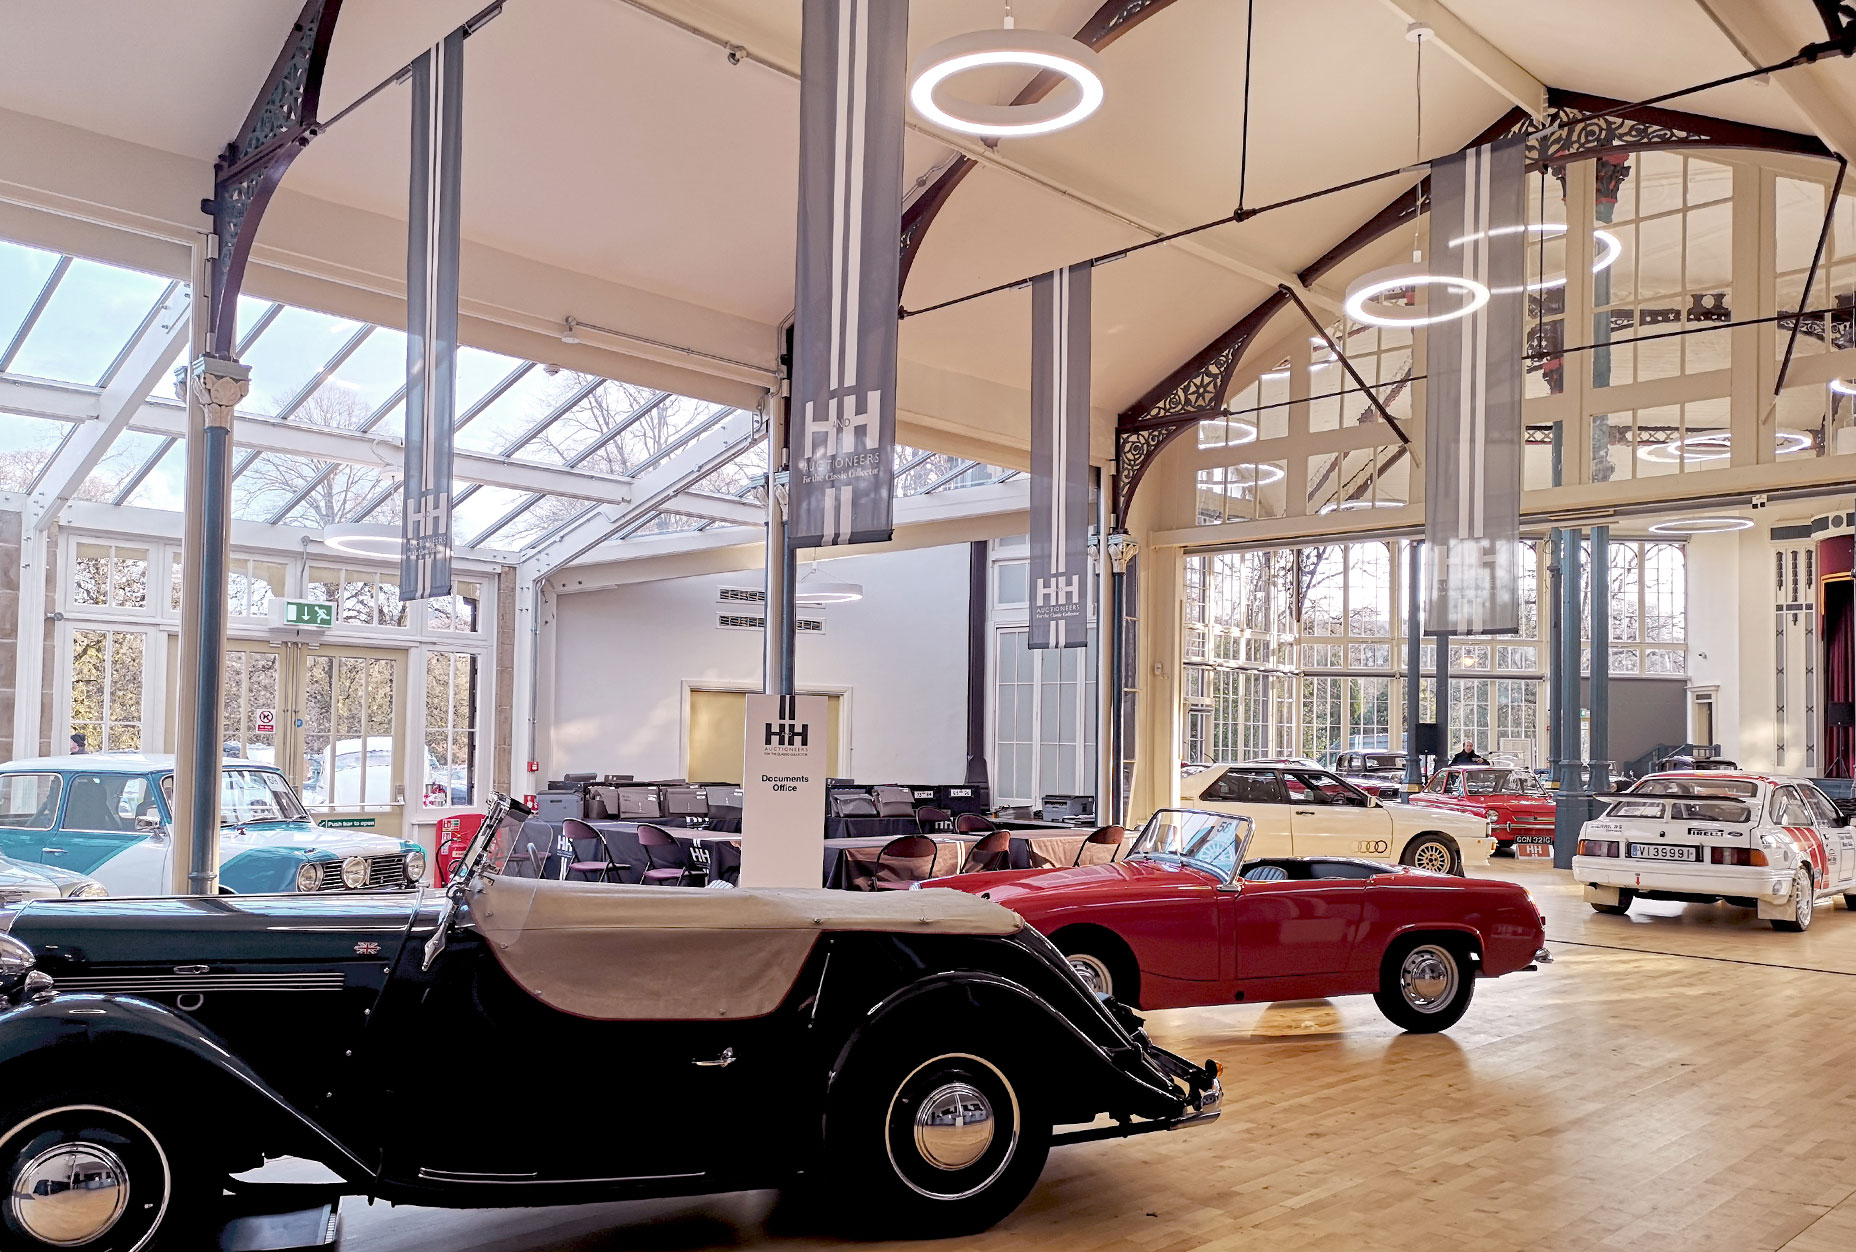 The Octagon - Pavilion Gardens - Reception - Car auction event L9